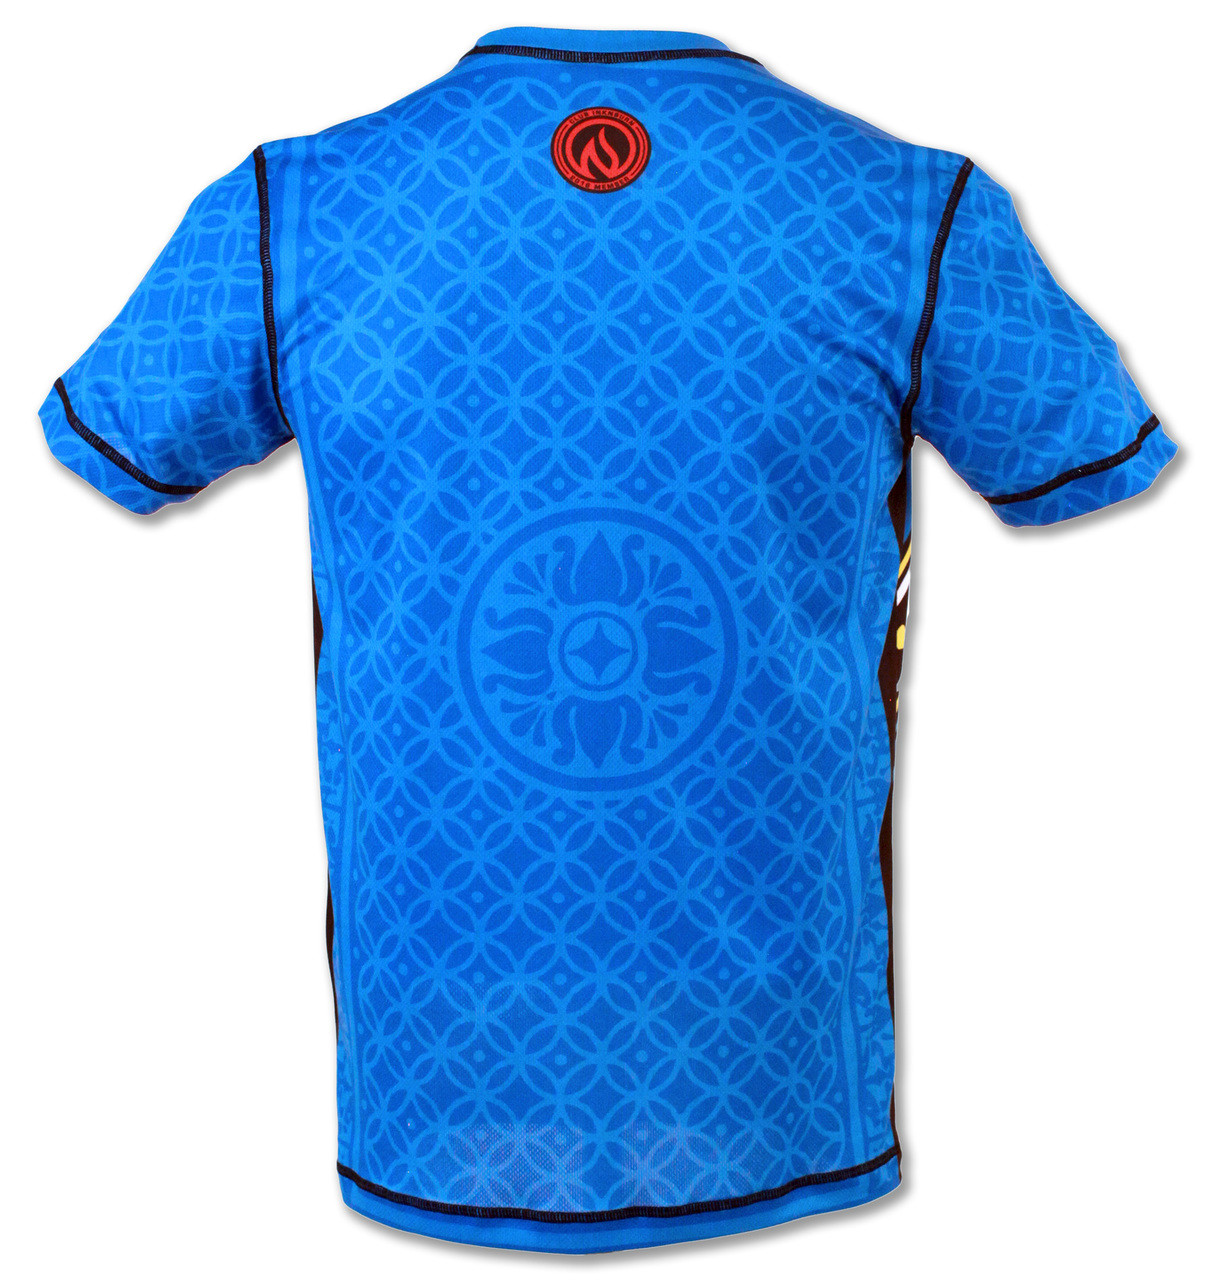 Club INB Men's King of Clubs Tech Shirt Back